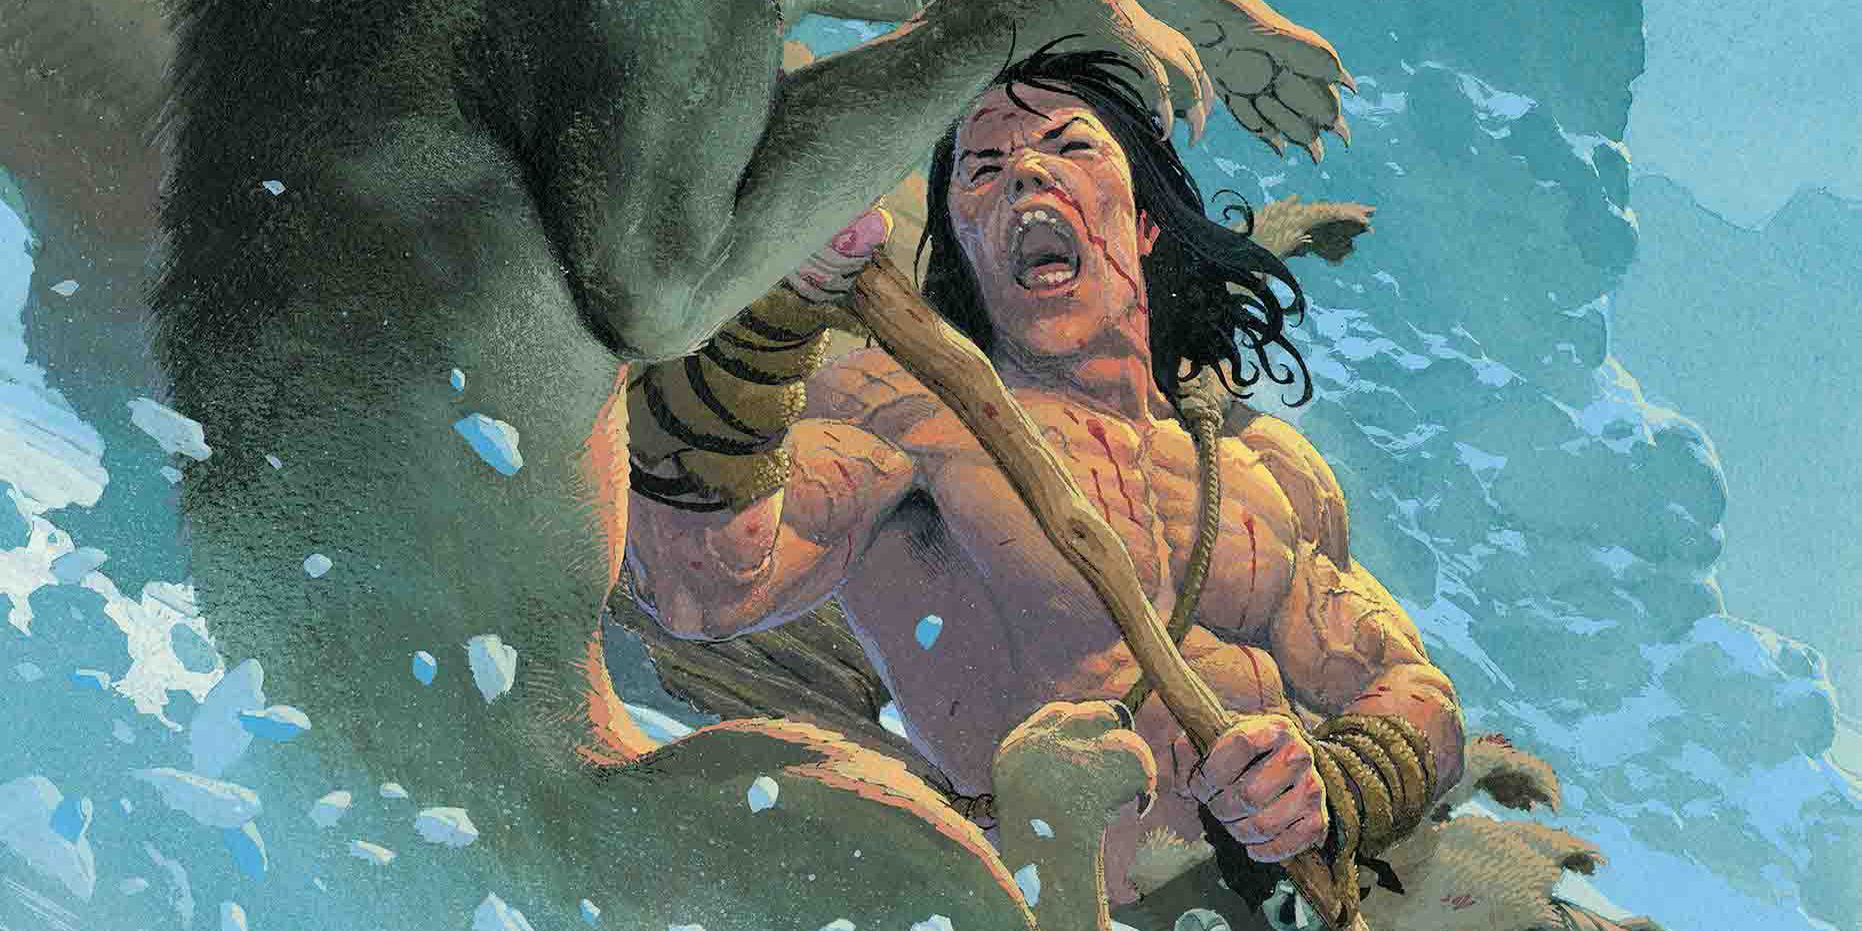 EXCLUSIVE: New Conan Series Reveals the Cimmerian's First Epic Adventure